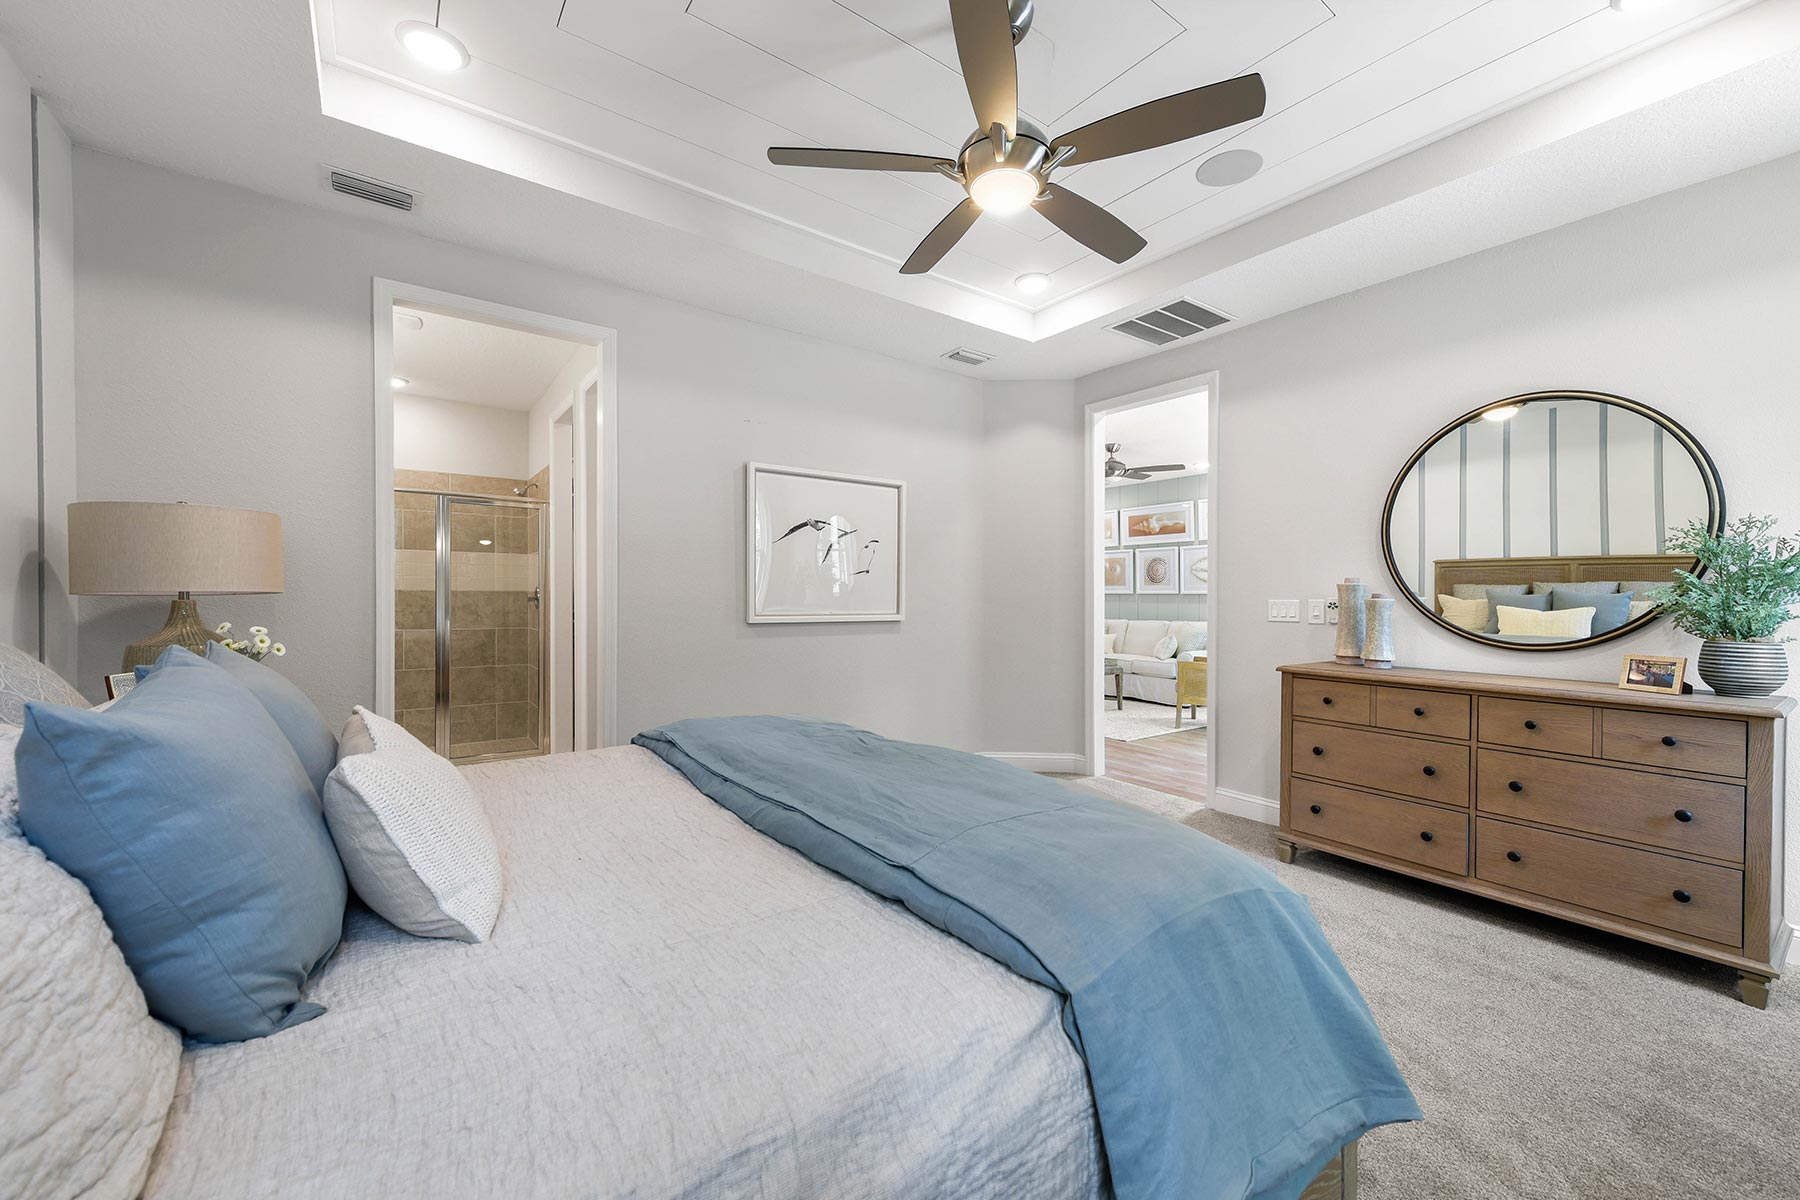 Ocean Plan Bedroom at RiverTown - WaterSong in St. Johns Florida by Mattamy Homes